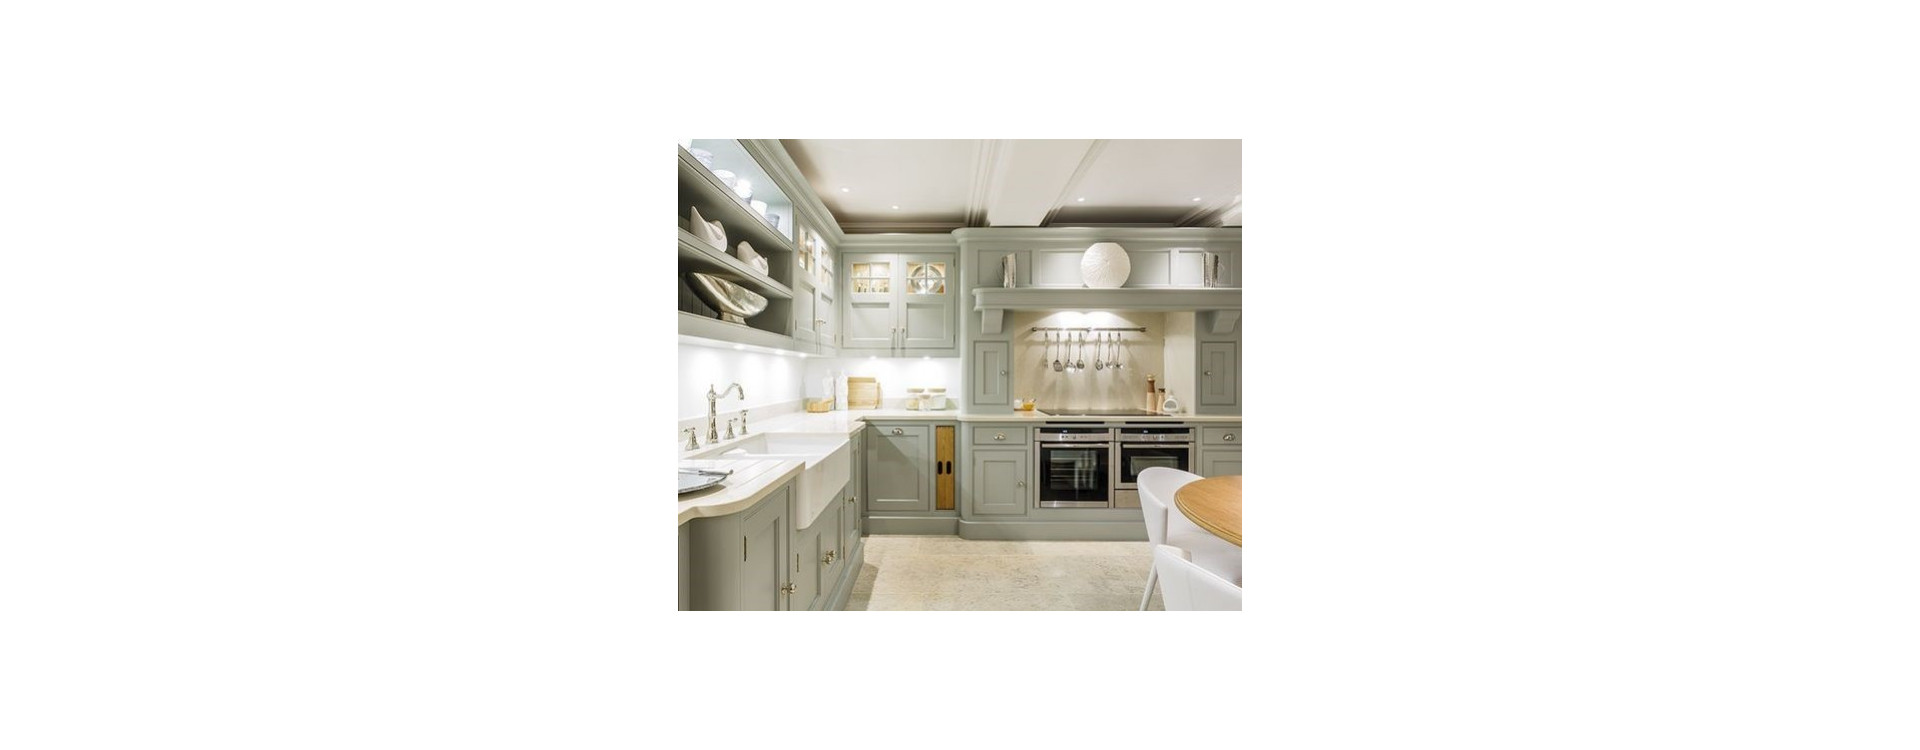 How to Choose the Right Skirting Board to Complement Your Kitchen